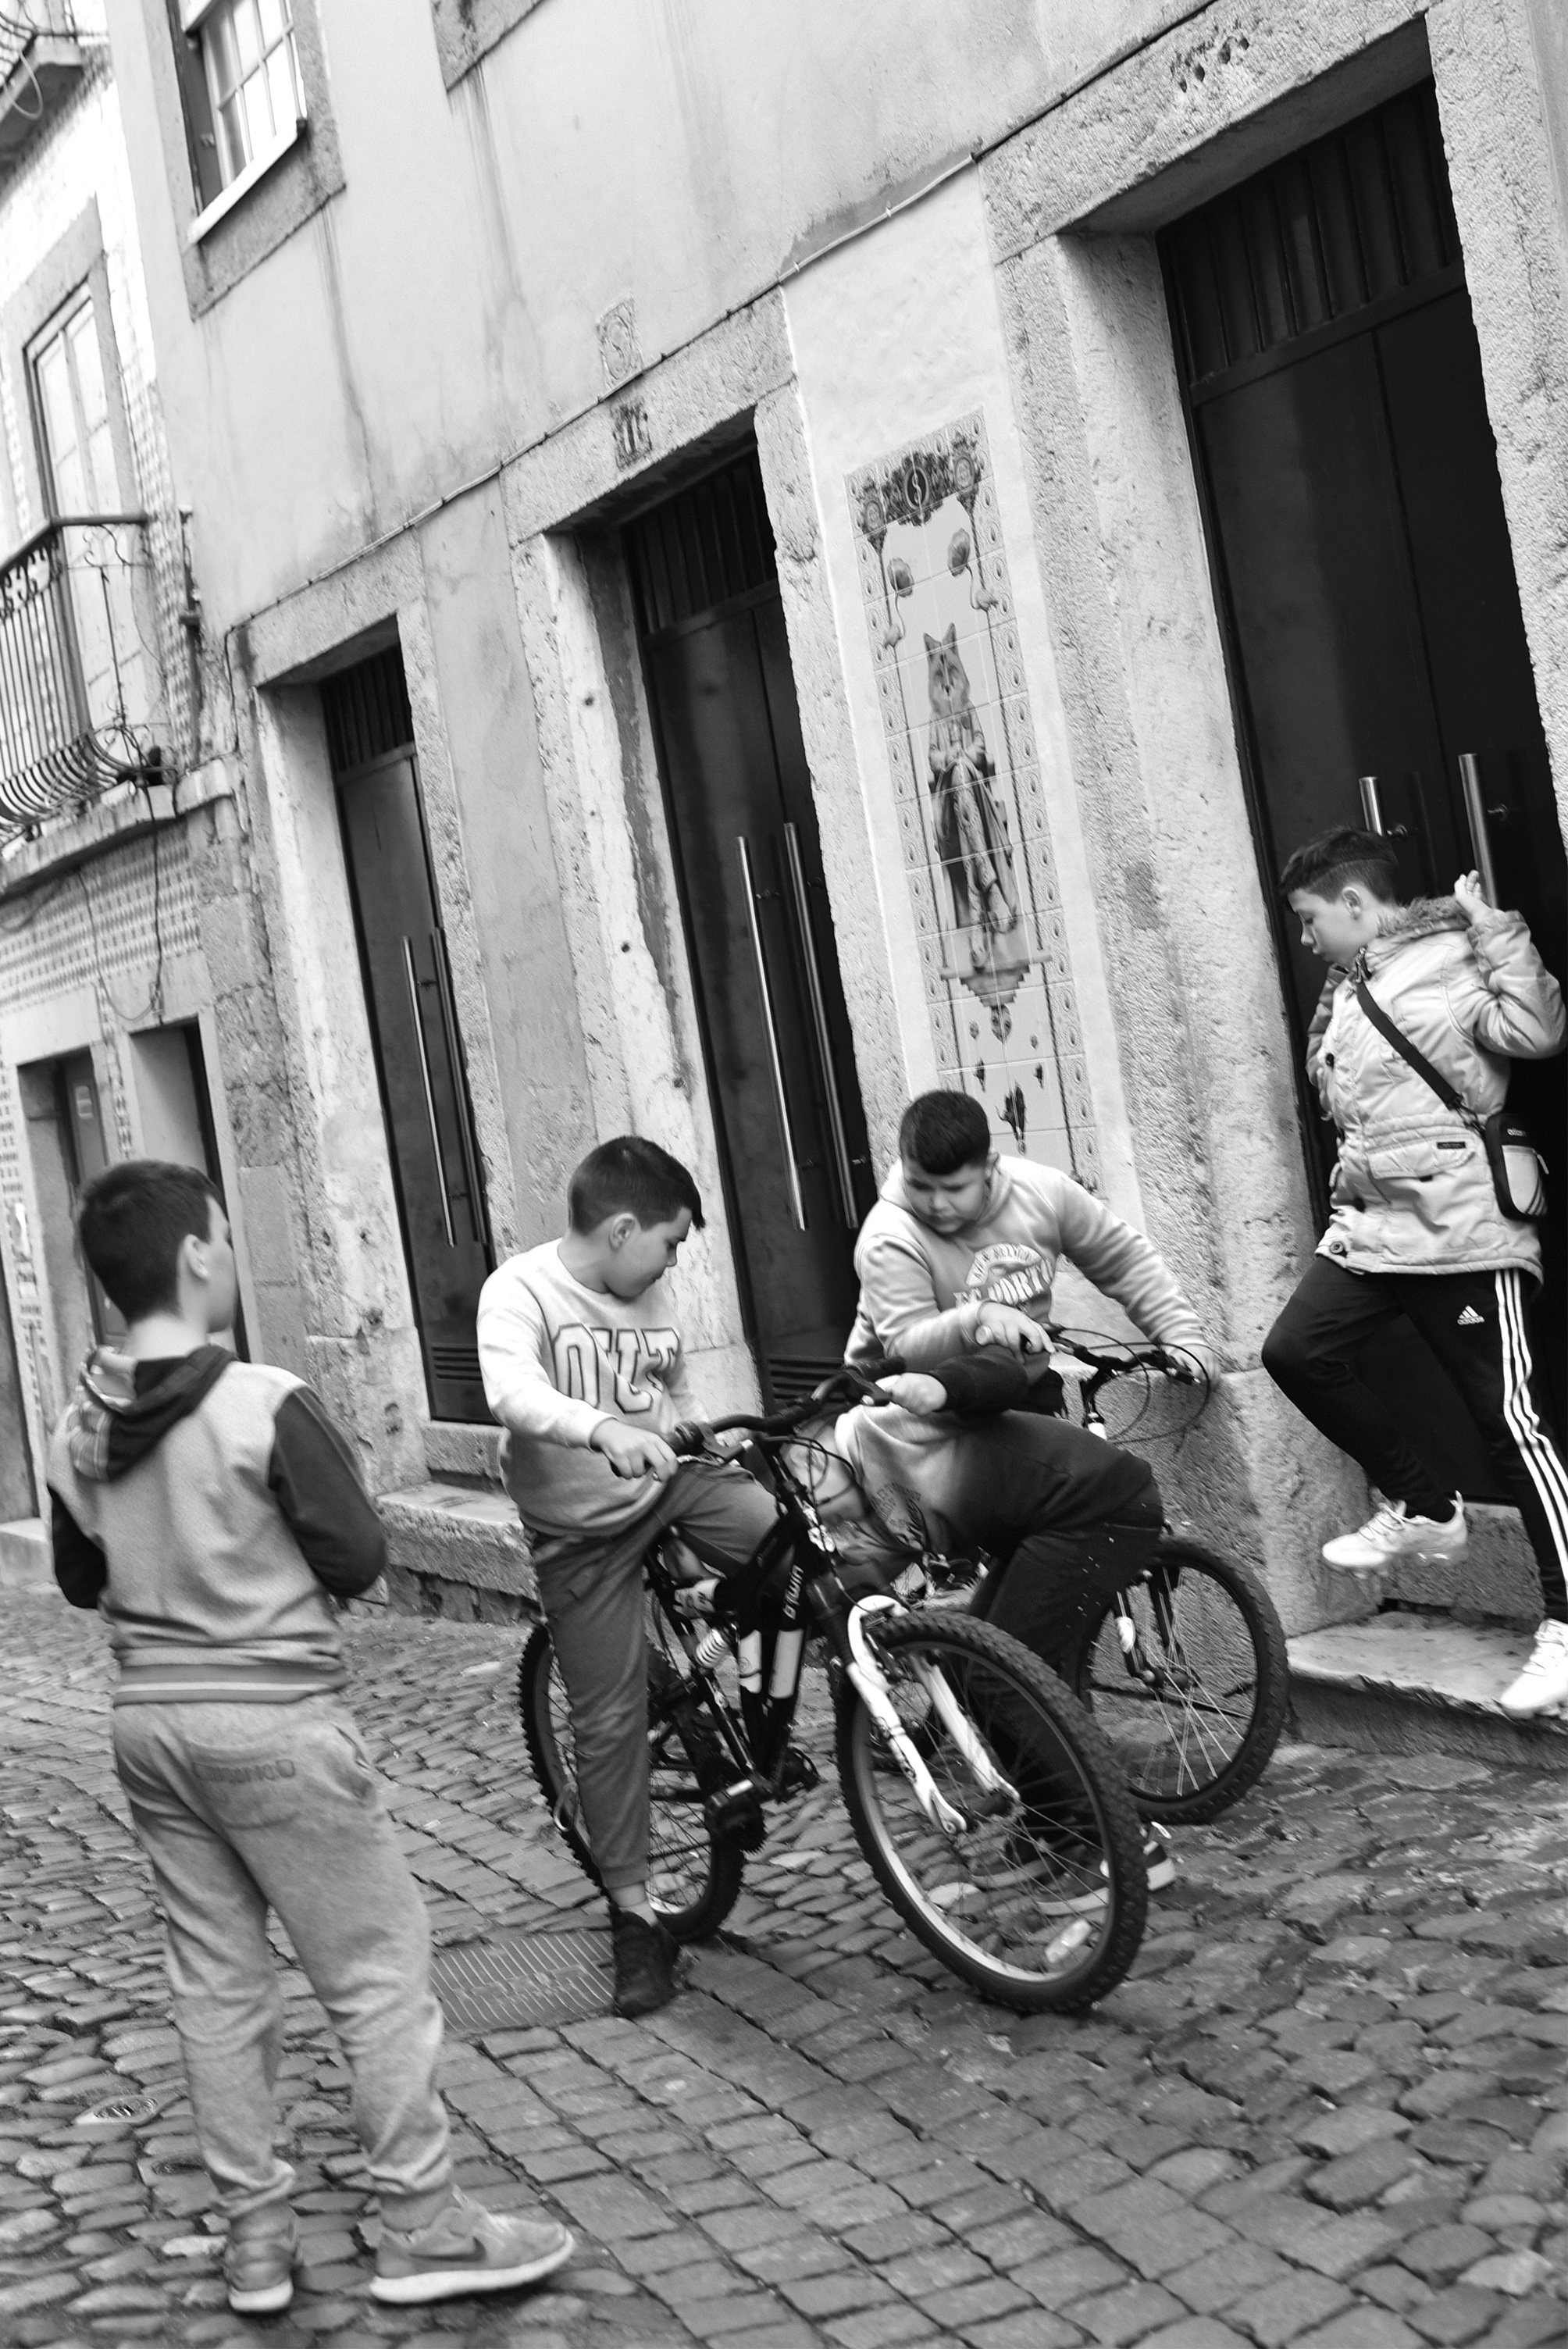 Anne_FOSSIER - Children of Fado district